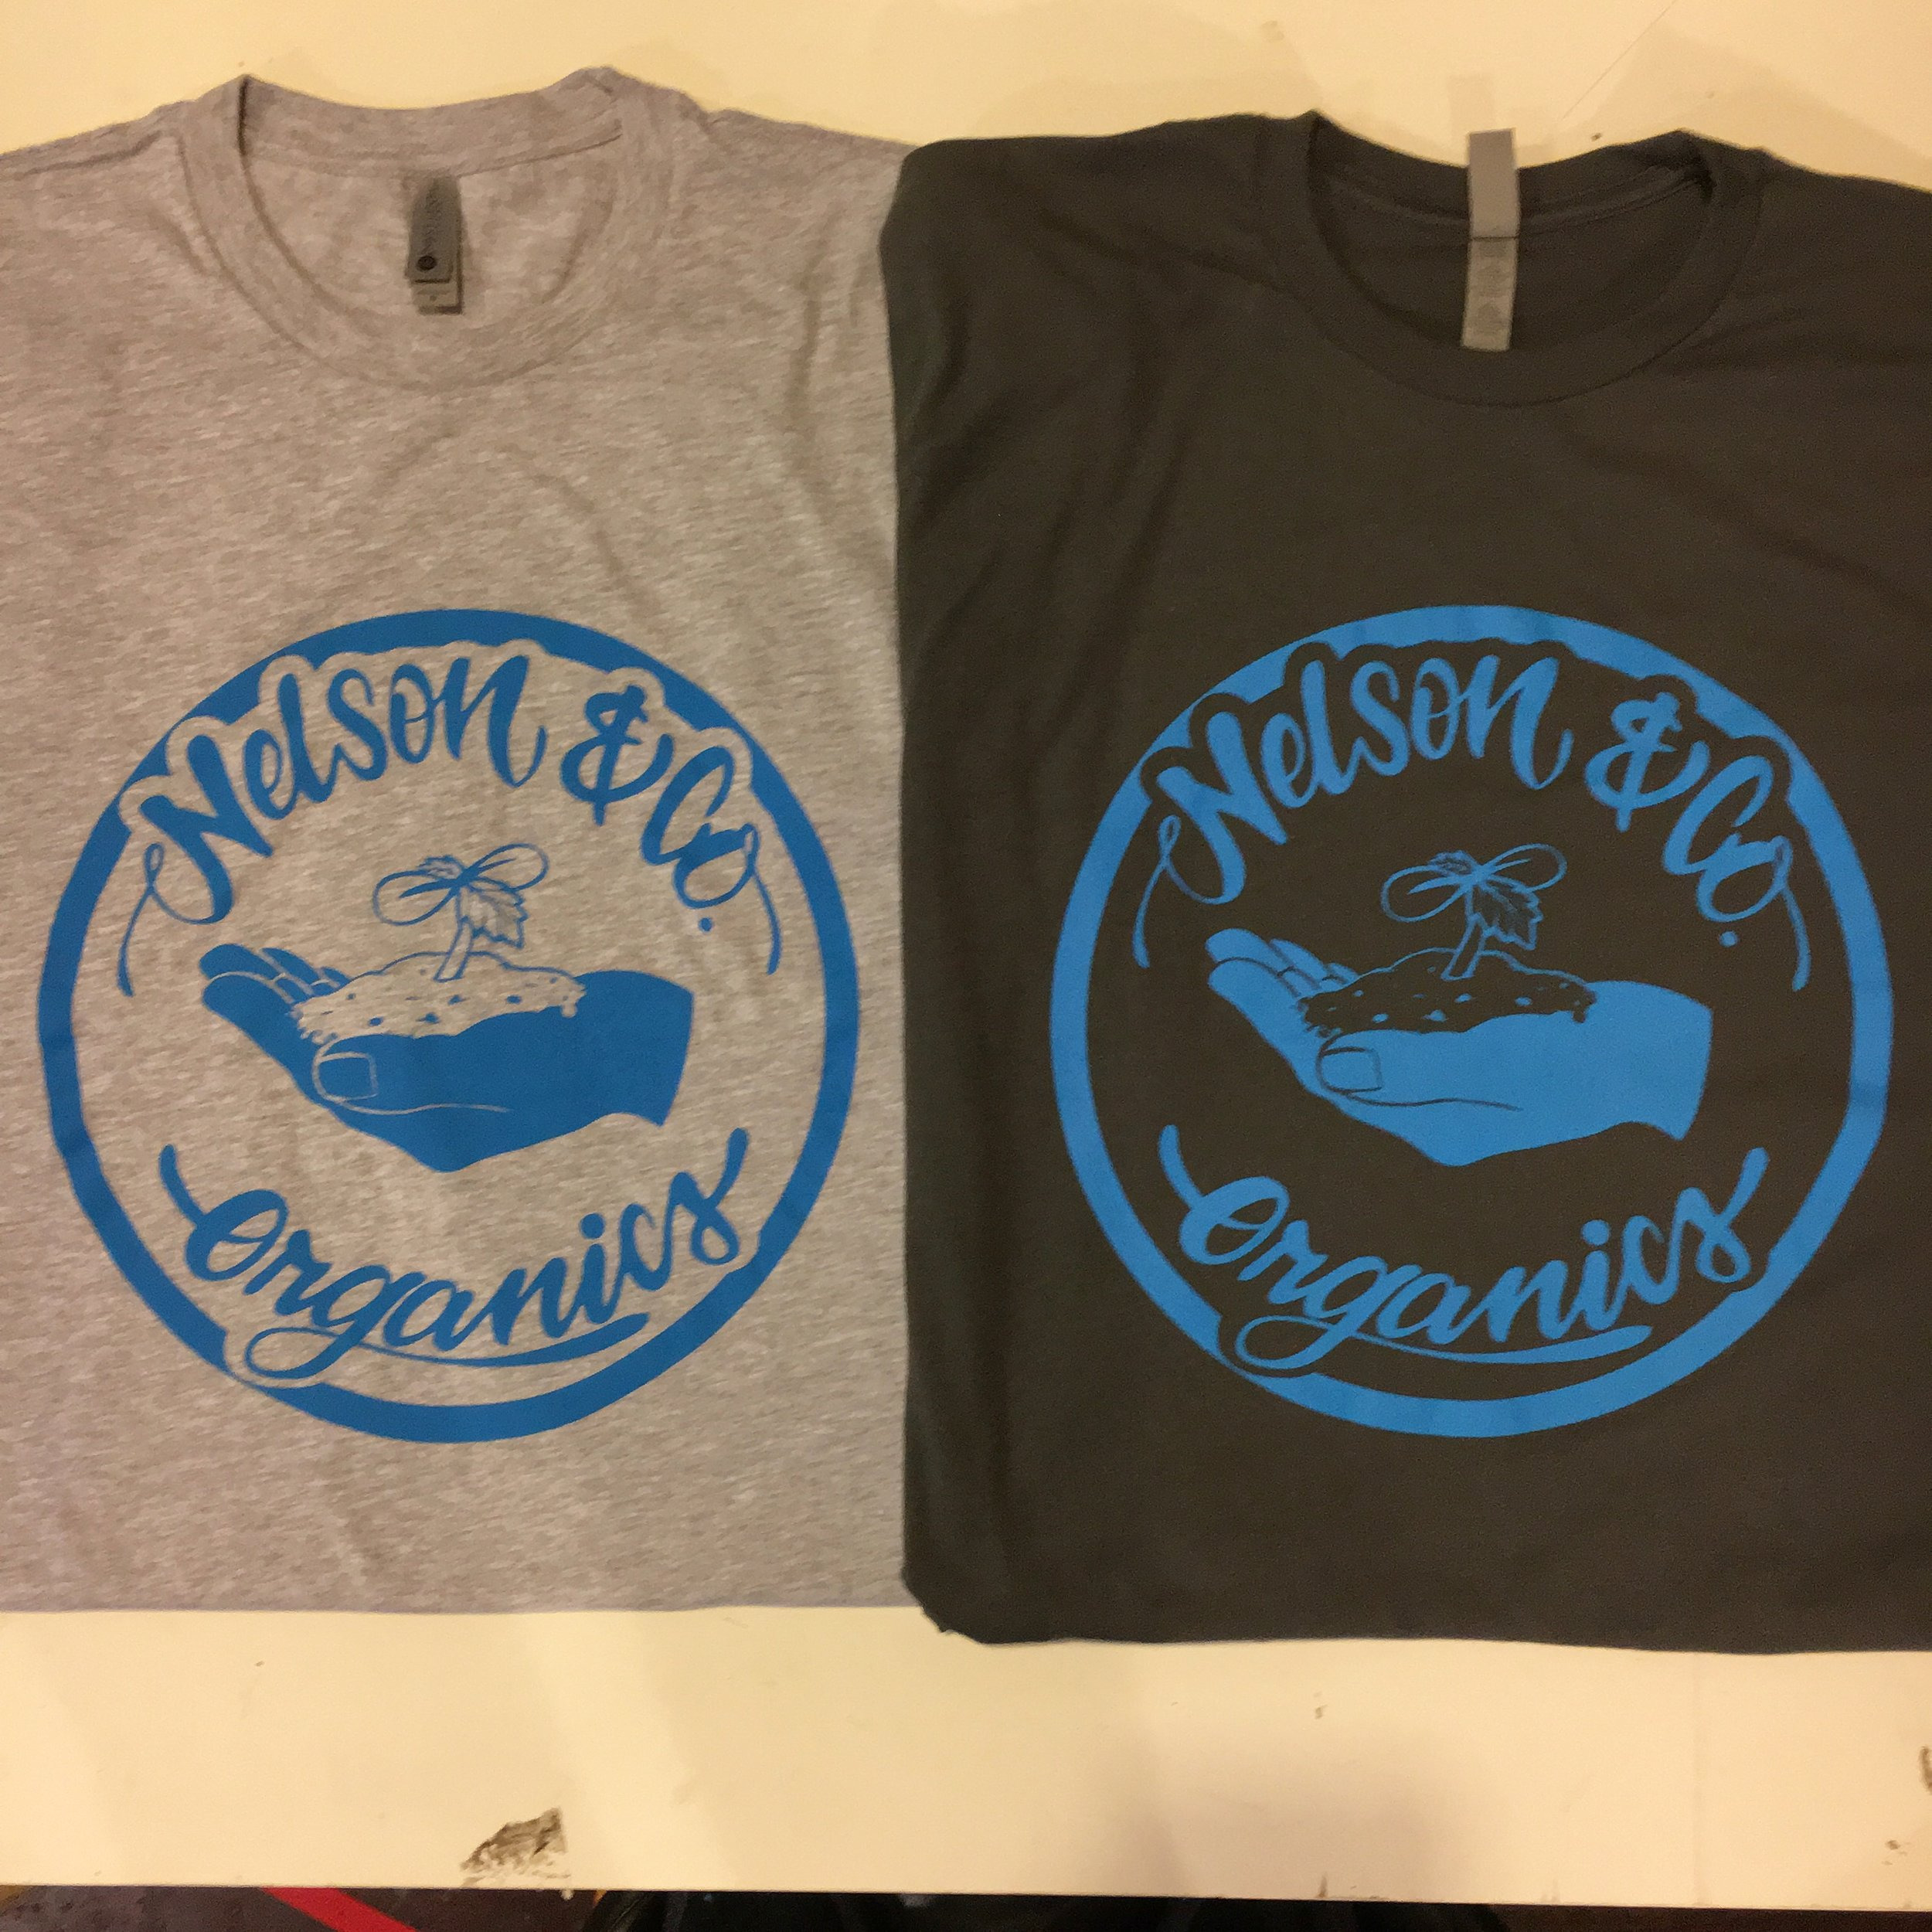 1 color print for Nelson & Co. Organics from Portland, OR